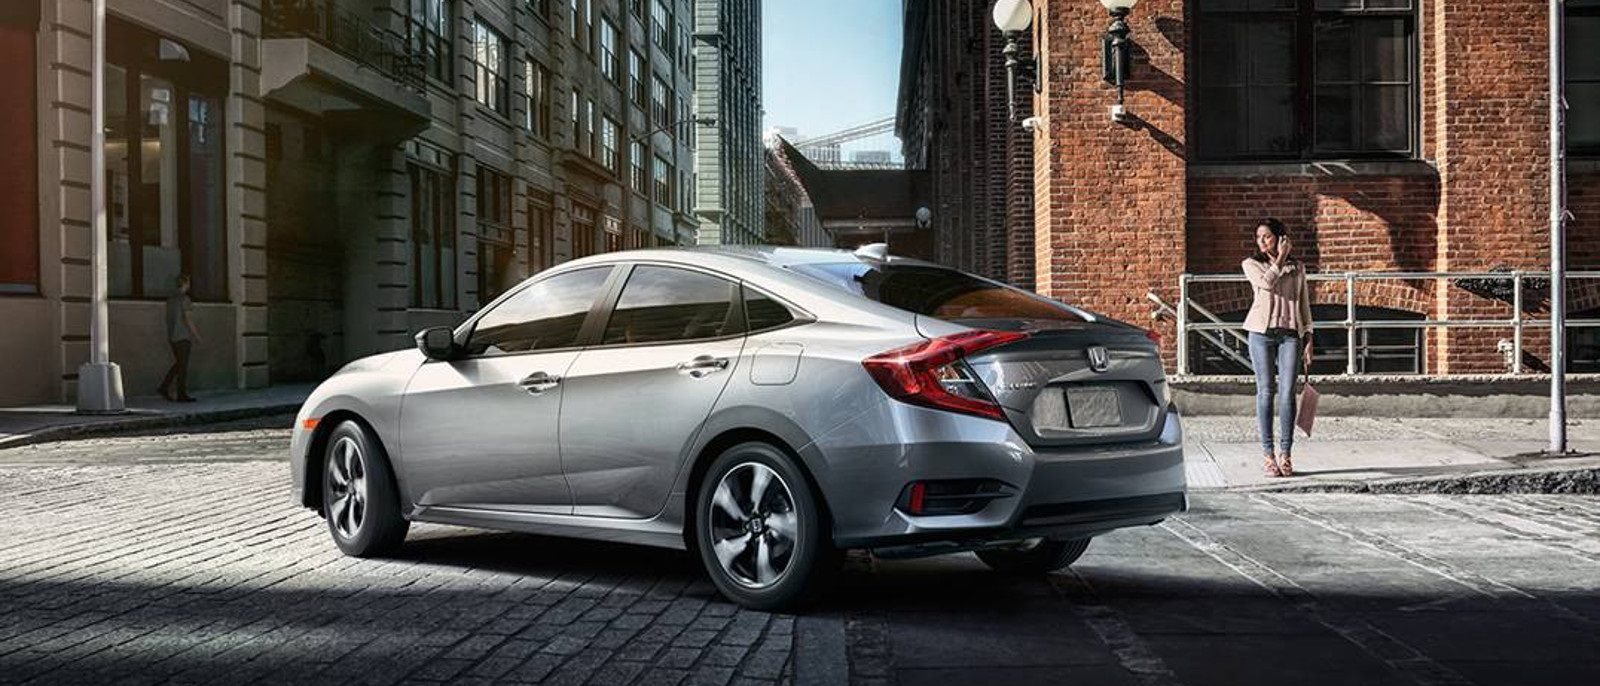 2016 Honda Civic Sedan Gray